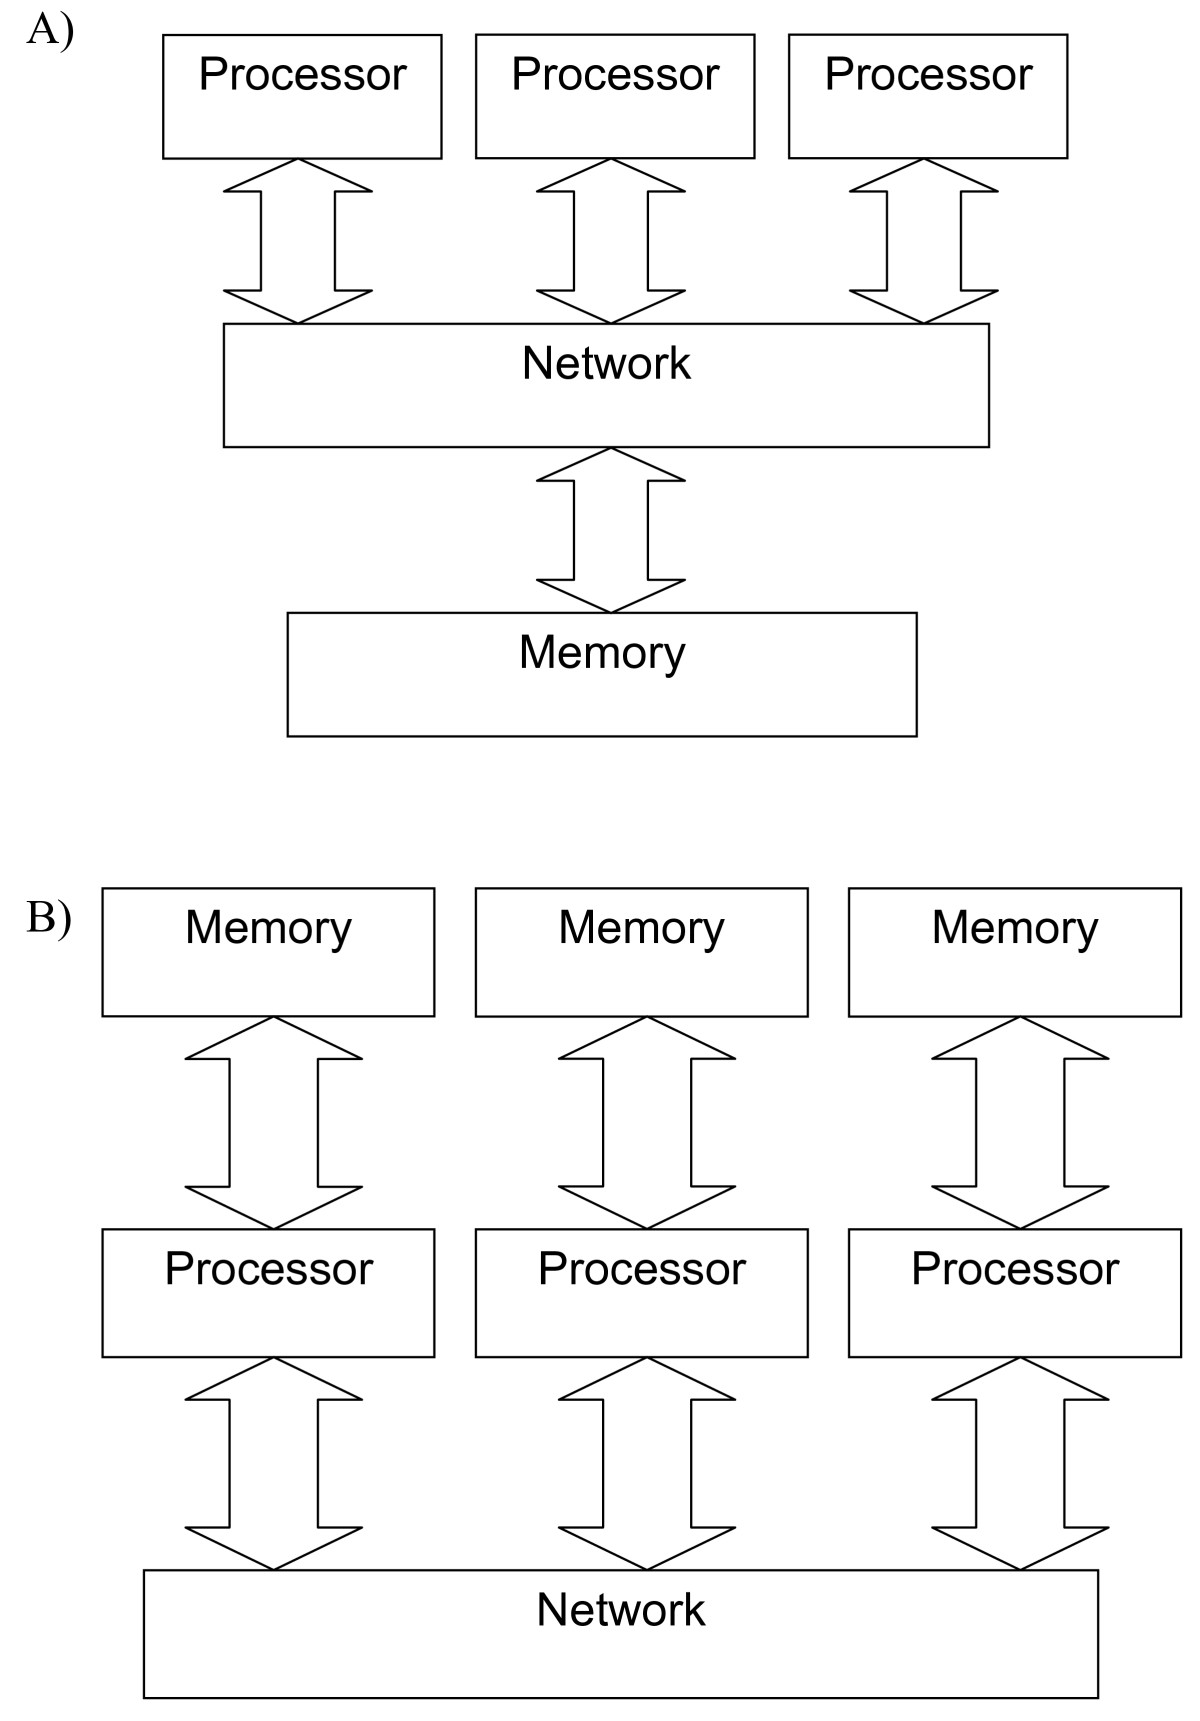 http://static-content.springer.com/image/art%3A10.1186%2F1471-2105-9-558/MediaObjects/12859_2008_Article_2543_Fig1_HTML.jpg